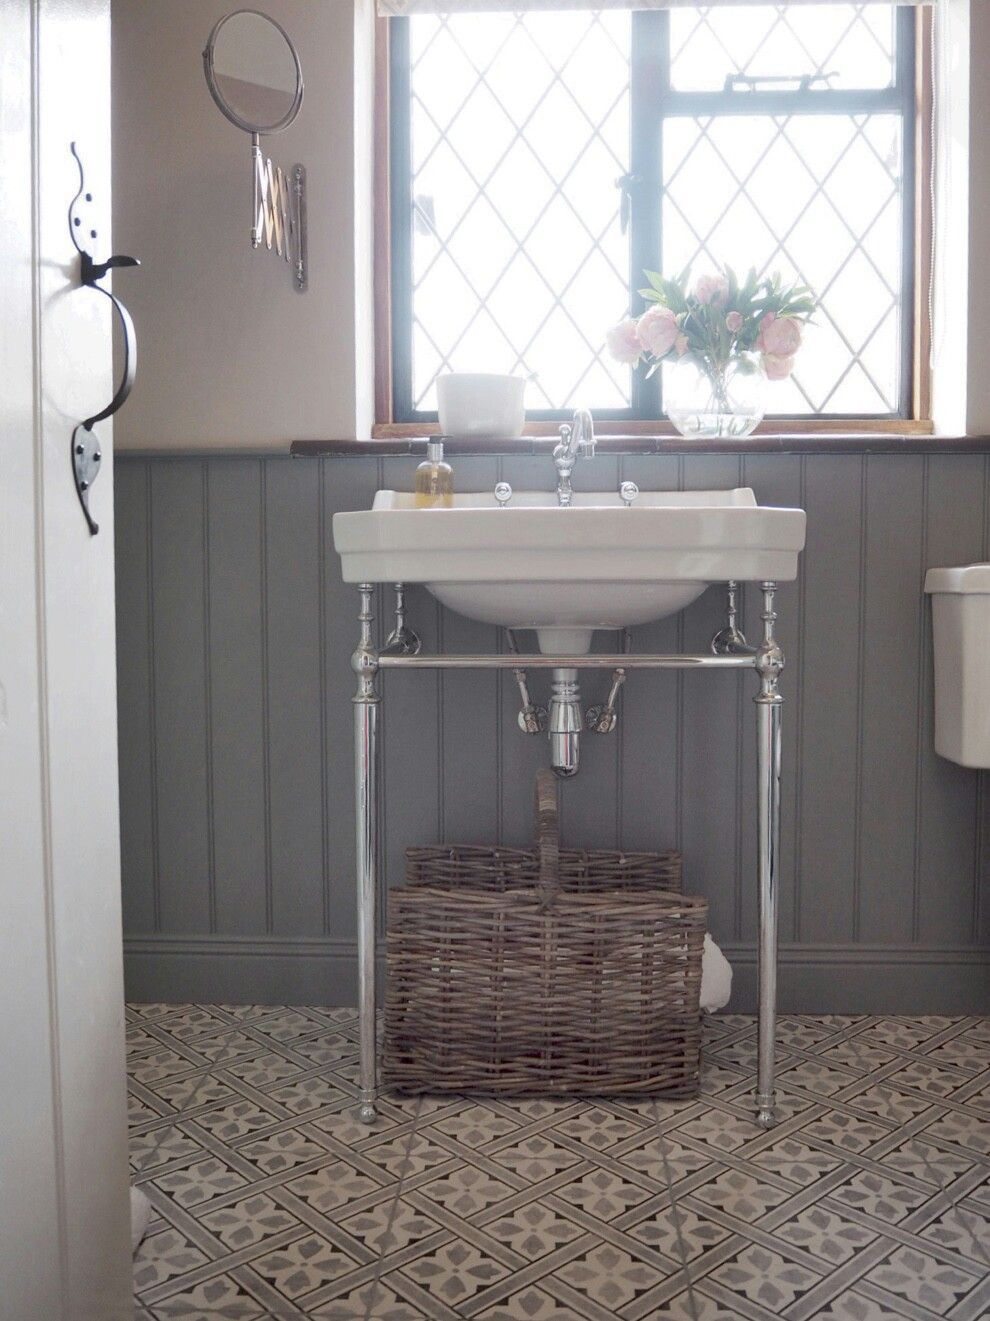 Laura Ashley Mr Jones Charcoal With Mid Grey Grout Needs To Be Lighter Or White I Think Victorian Style Bathroom Laura Ashley Mr Jones Traditional Bathroom